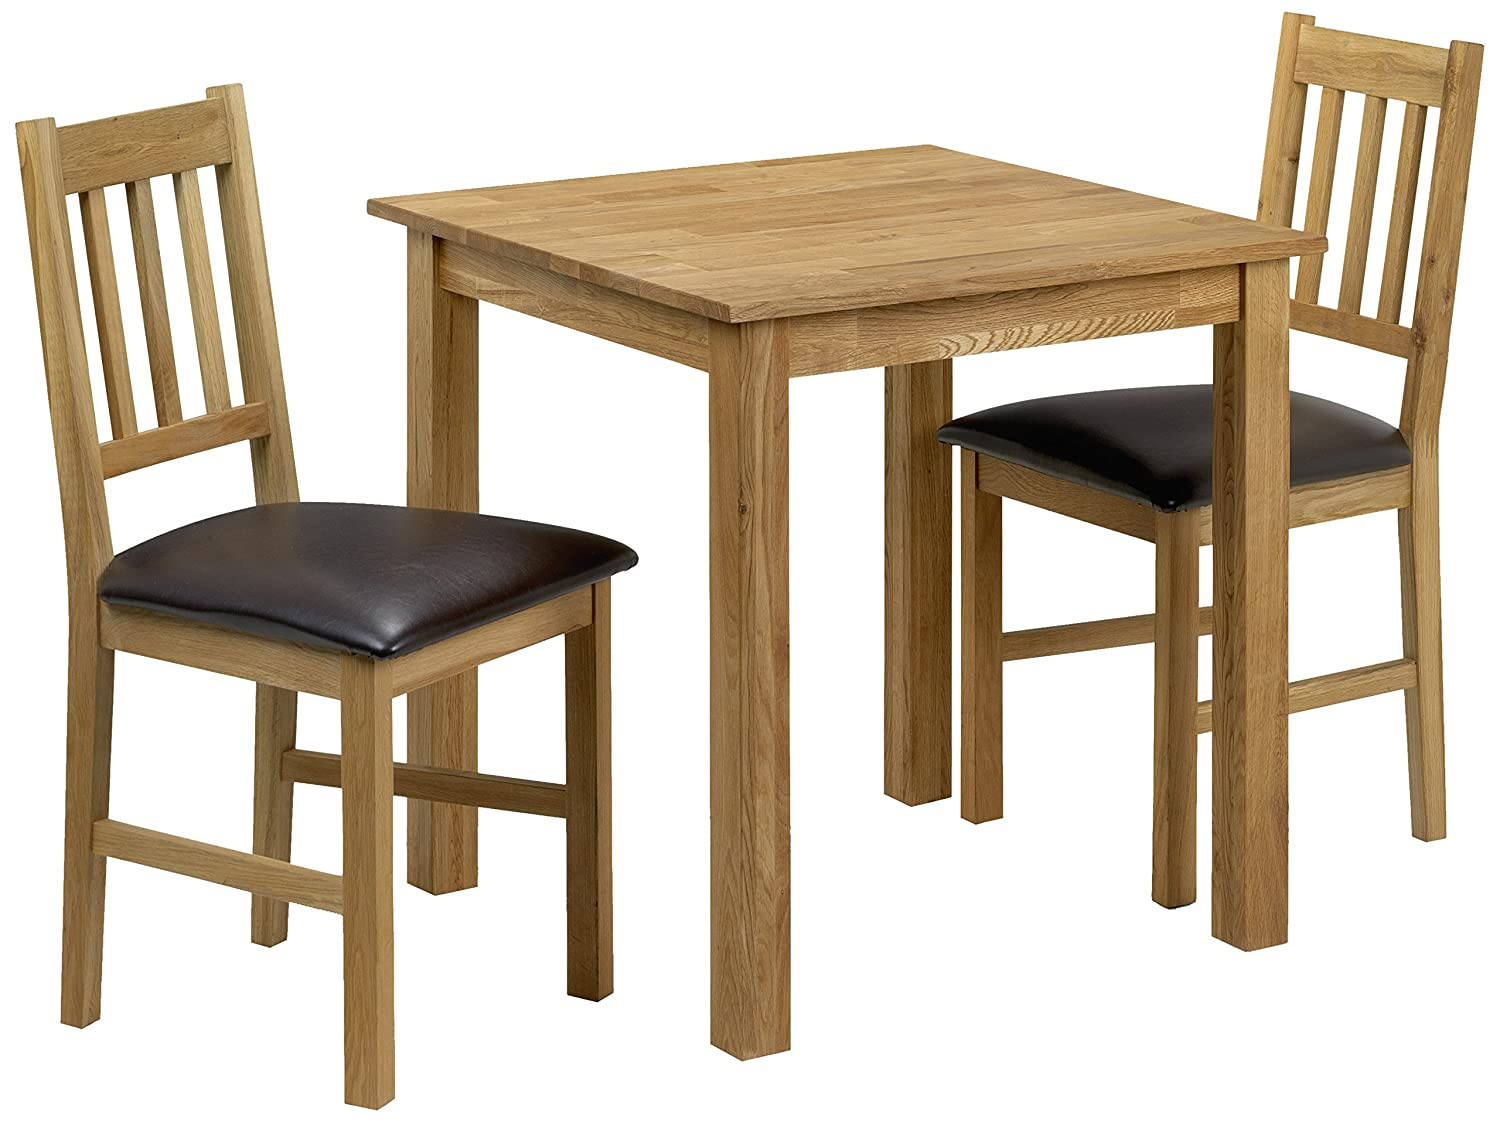 table 2 chairs. julian bowen coxmoor square dining table set with 2 chairs, light oak: amazon.co.uk: kitchen \u0026 home chairs a